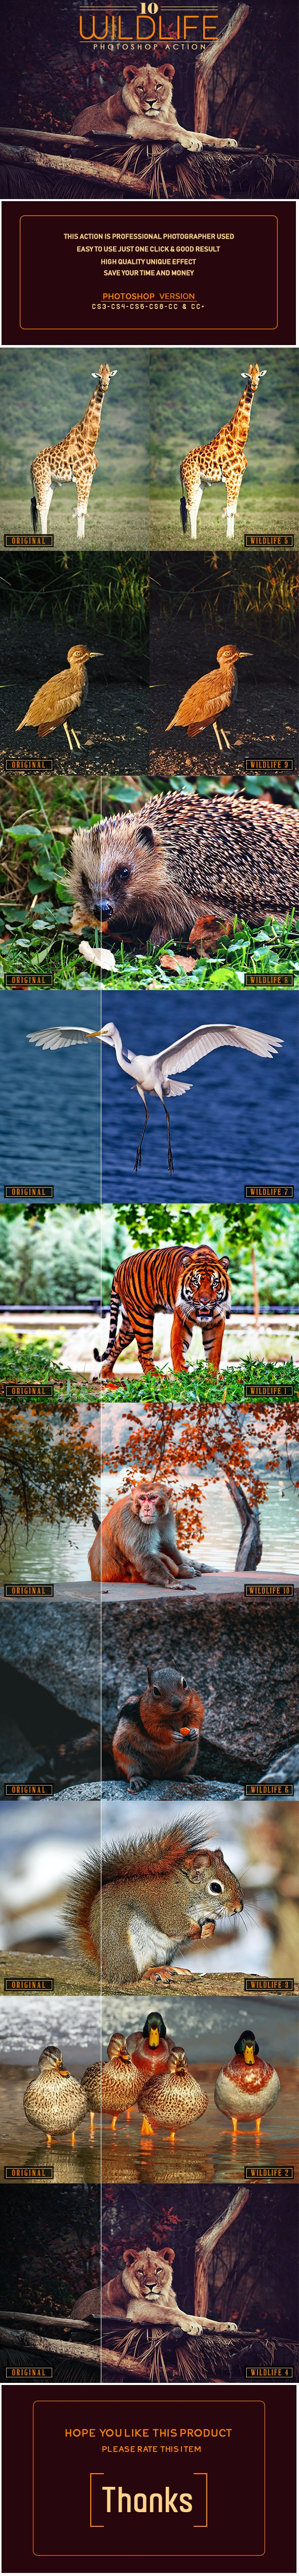 10 Wildlife Photoshop Action - Photo Effects Actions